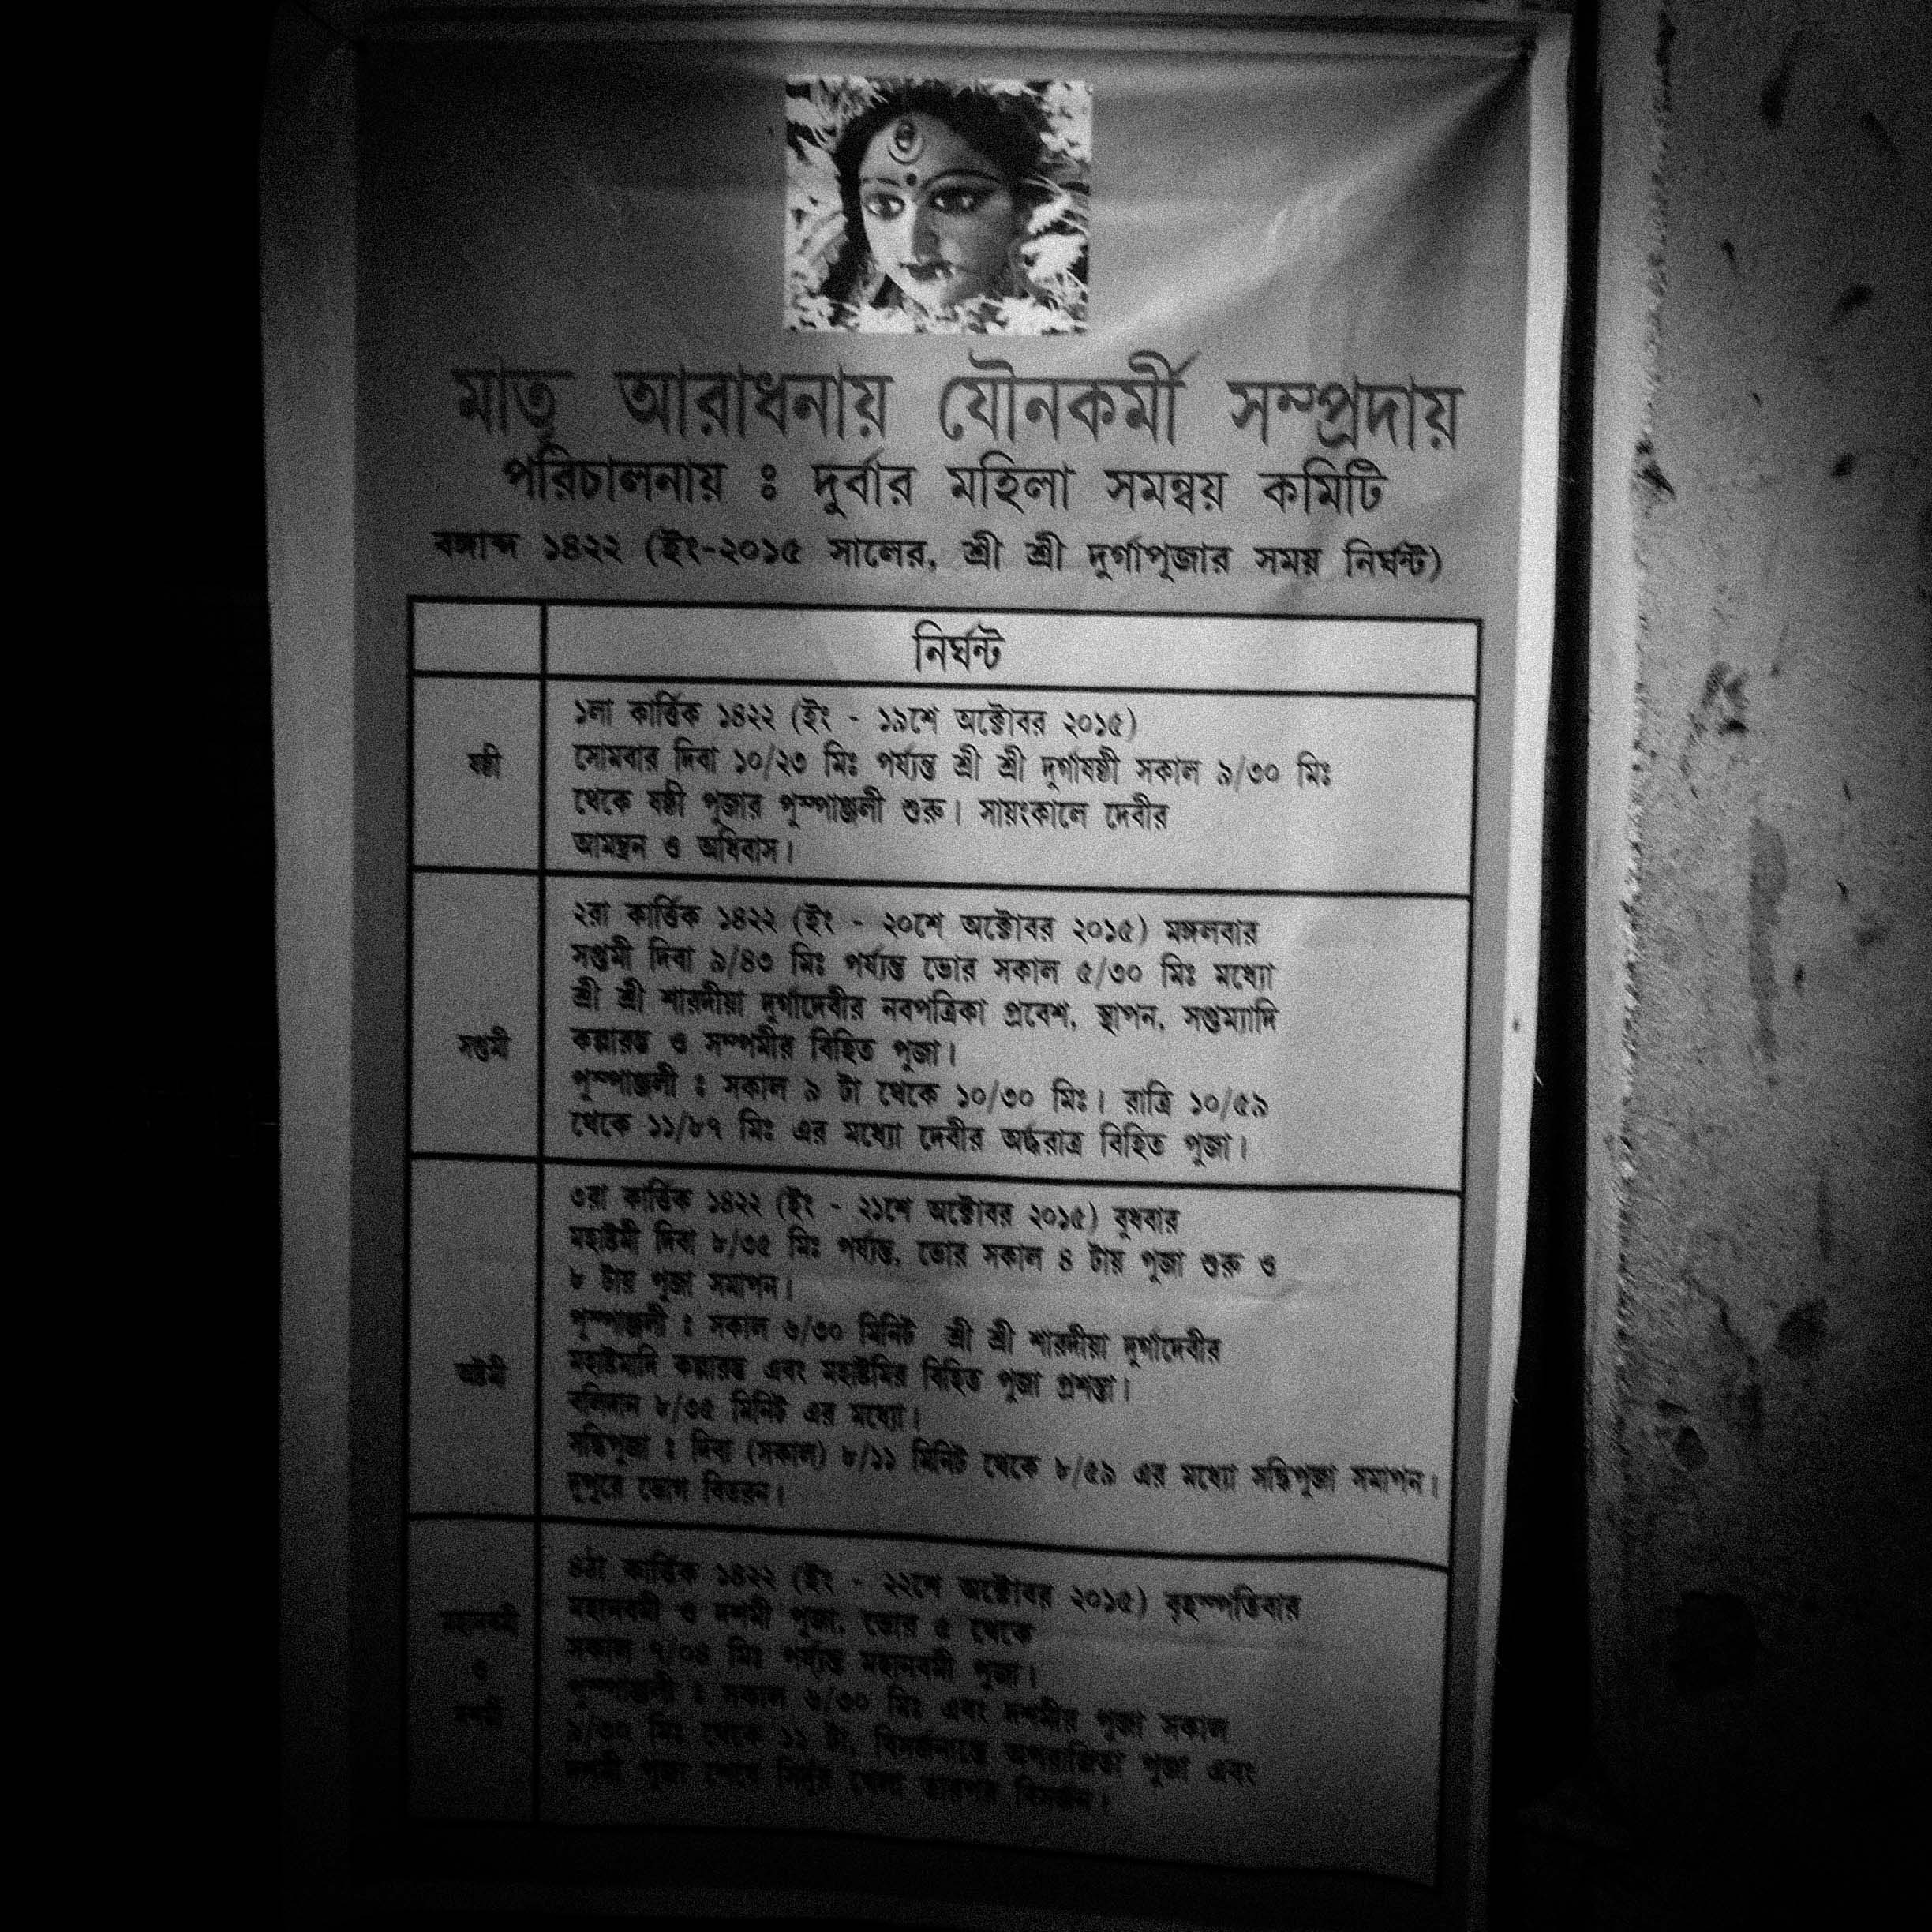 The elaborate programme that hung prominently listed each day's timings for activities. Here too in the wee hours, male members of DMSC who were minding the site of the locked-and-barred Durga were warm and chatty. They rued the state of affairs that continually pushes them deeper into the belly of the city so that they are not seen participating like regular folk out on its streets which belong to them as much as any other. But they were laughing, and noting that since some progress had been made and they were in their third year, the puja would continue its work of proving that sex-workers could stake their claims on city spaces too. Ironically, beautifully, the entire neighbourhood as we traversed it was lit up by some heavily-made-up and gorgeously-dressed sex-workers who provided stiff competition to the dazzling lights of the puja pandals standing at every few feet in their lanes. Perhaps business was brisk during these carnivalesque nights; perhaps the Durga they had set up was bestowing them with luck; perhaps the pleasure of community worship was also carnal. One could only hope so.